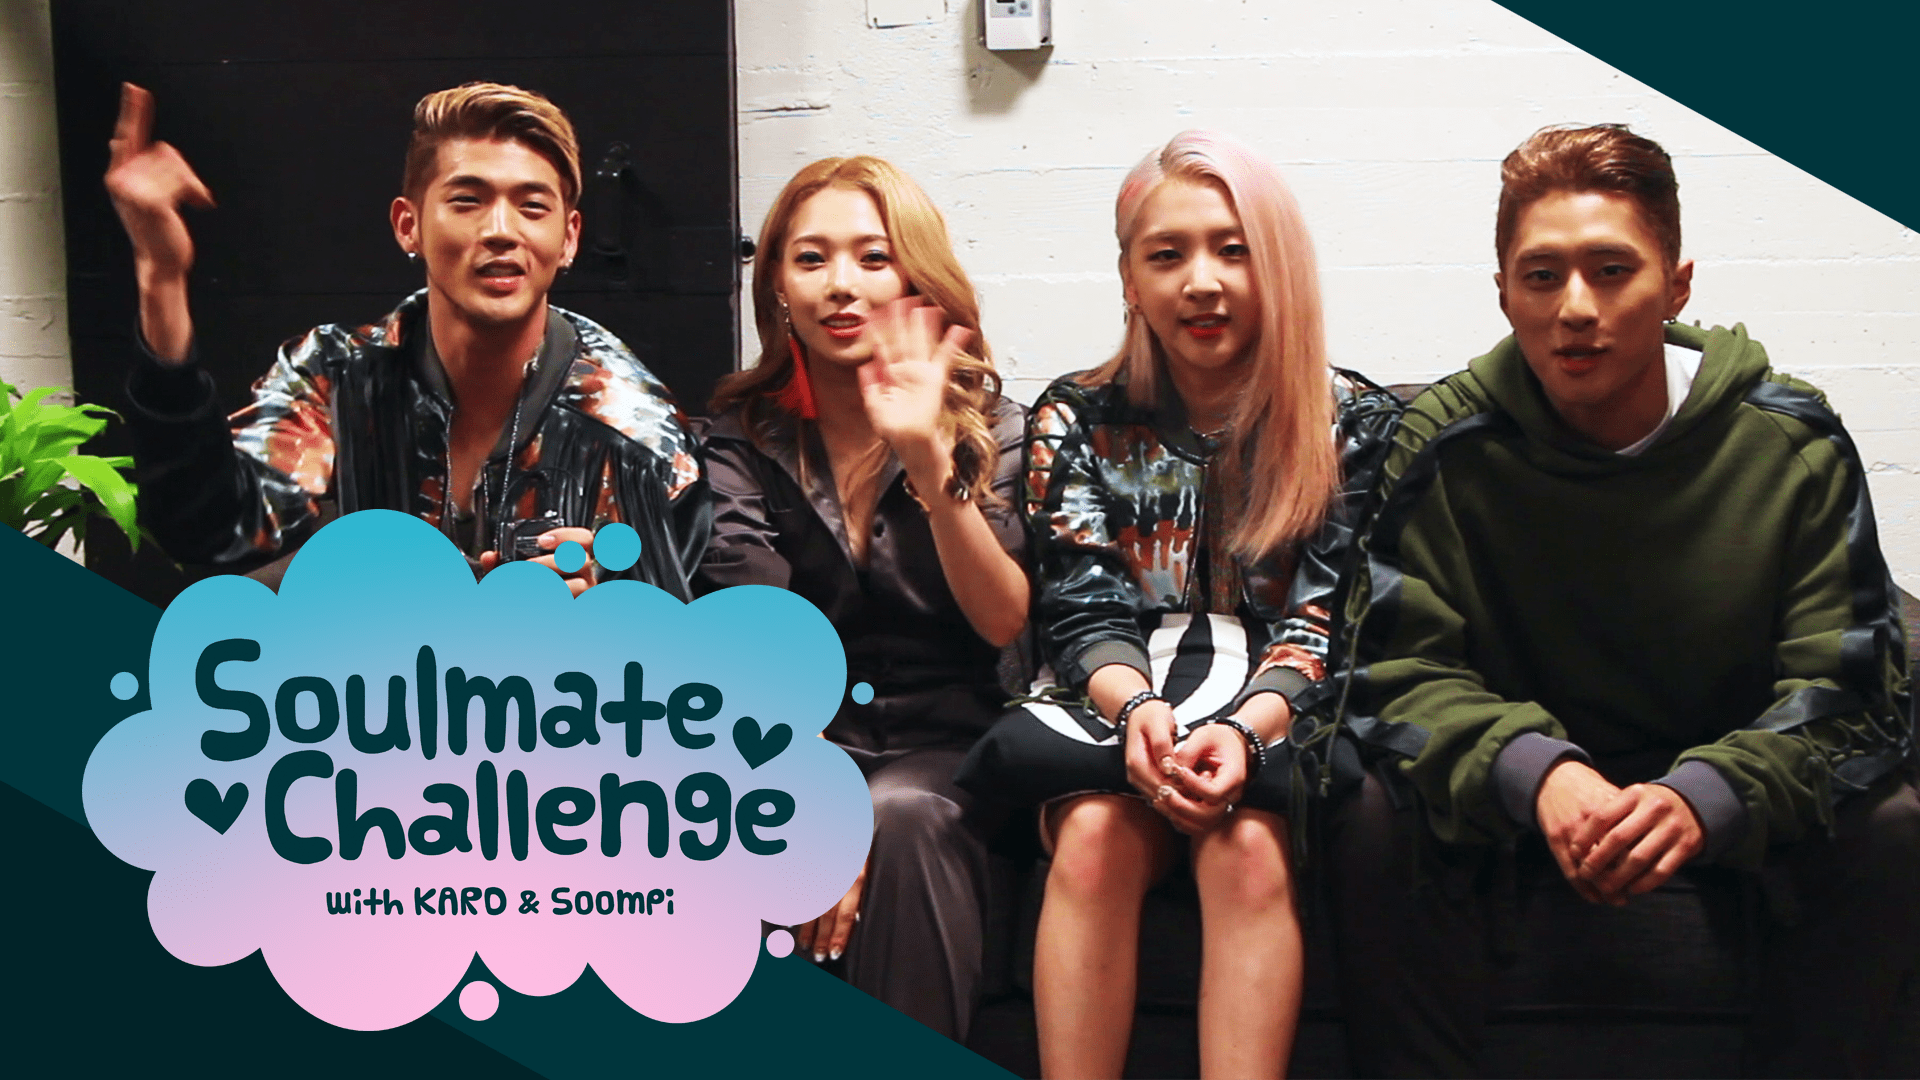 QUIZ: KARD Challenges You To Take The Soulmate Challenge